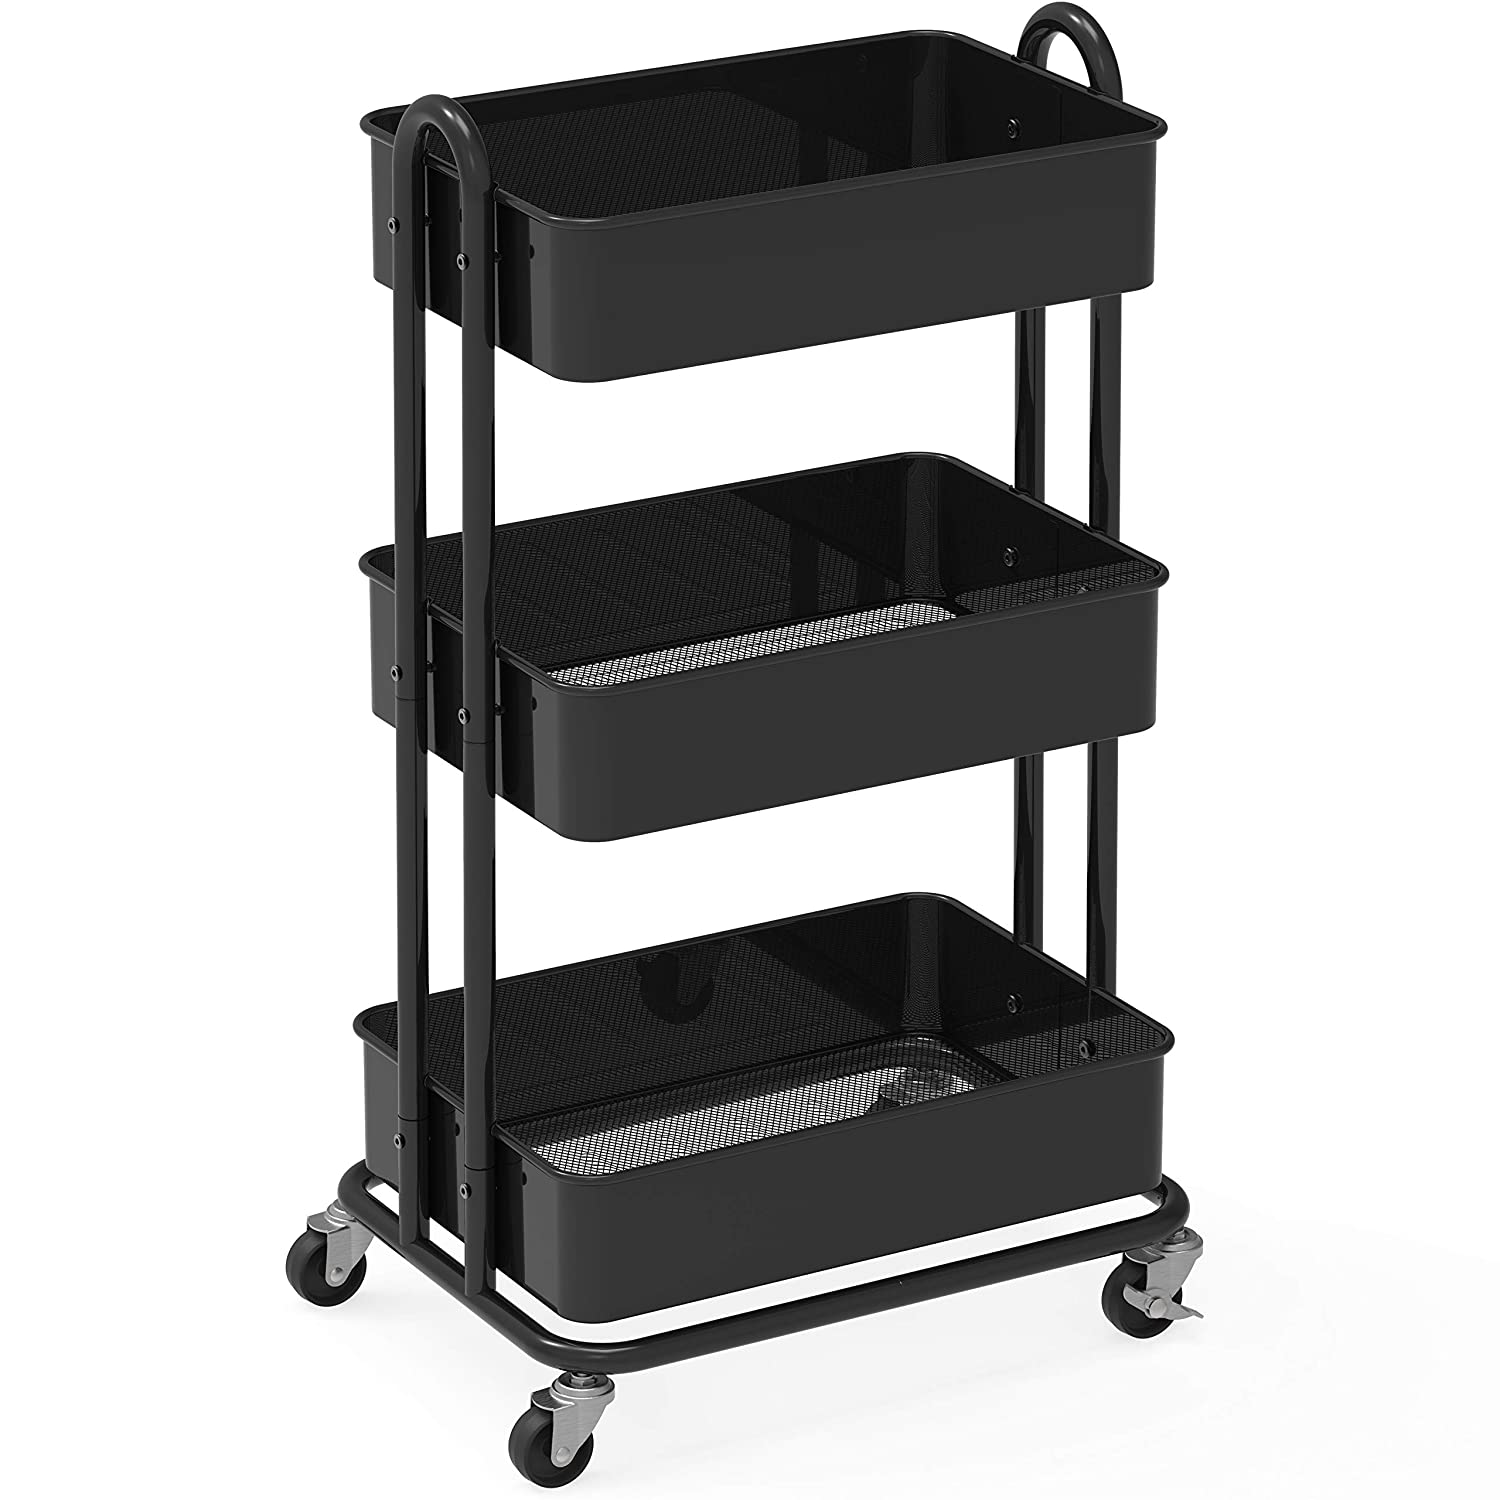 SimpleHouseware Heavy Duty 3-Tier Metal Utility Rolling Cart, Black